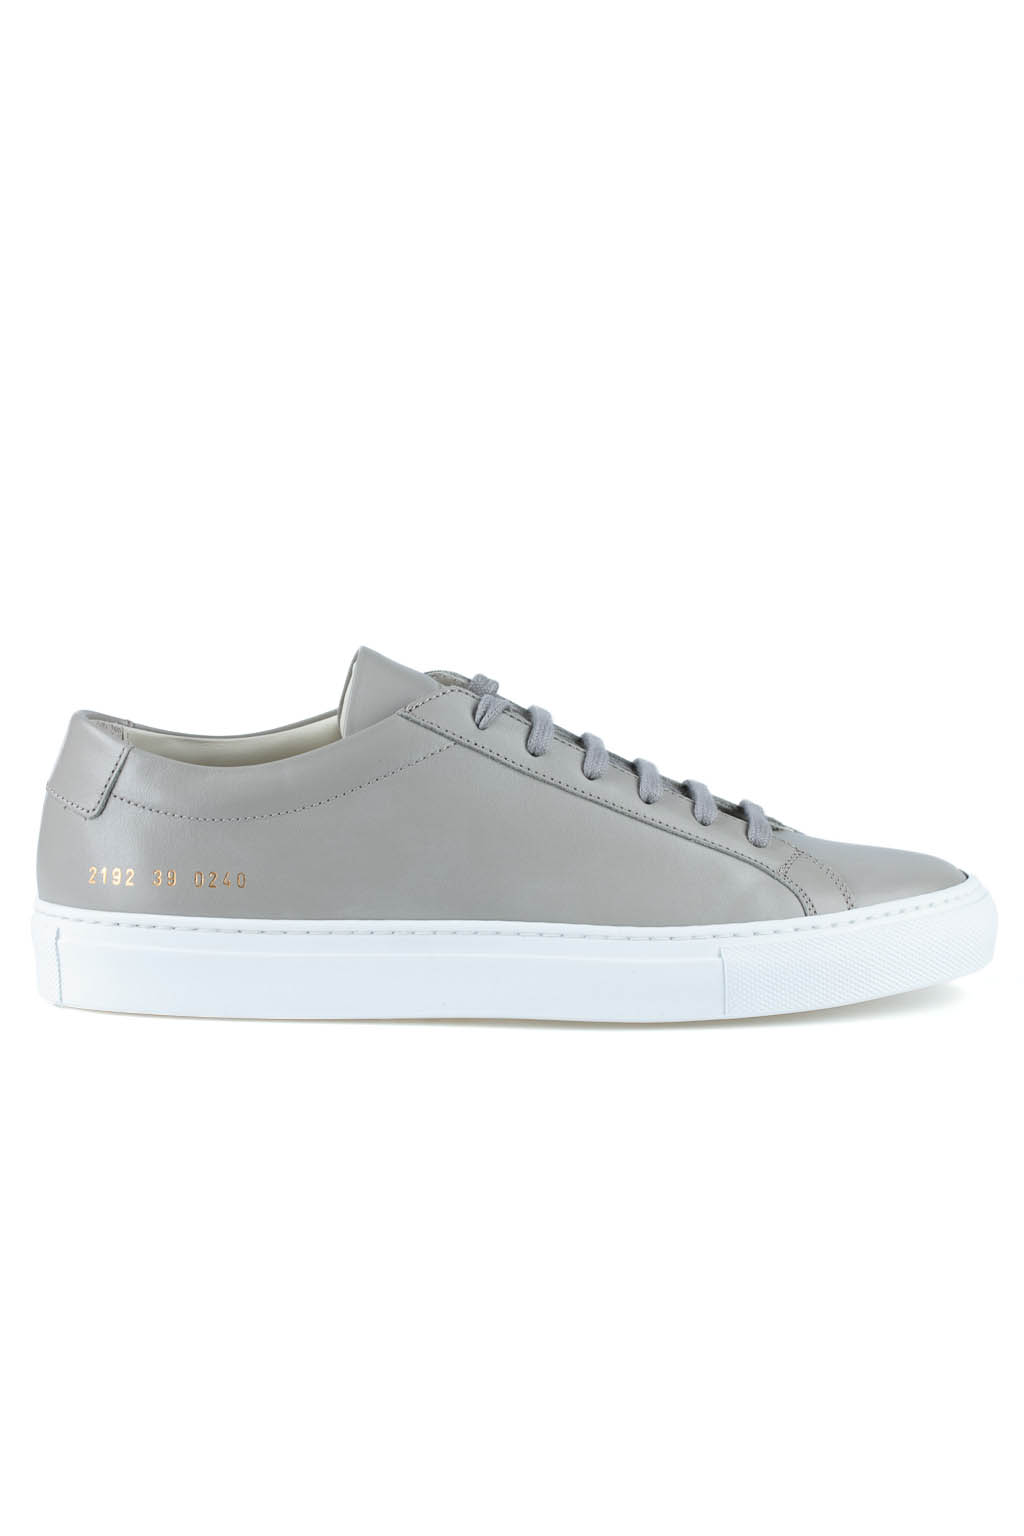 Common Projects Toronto